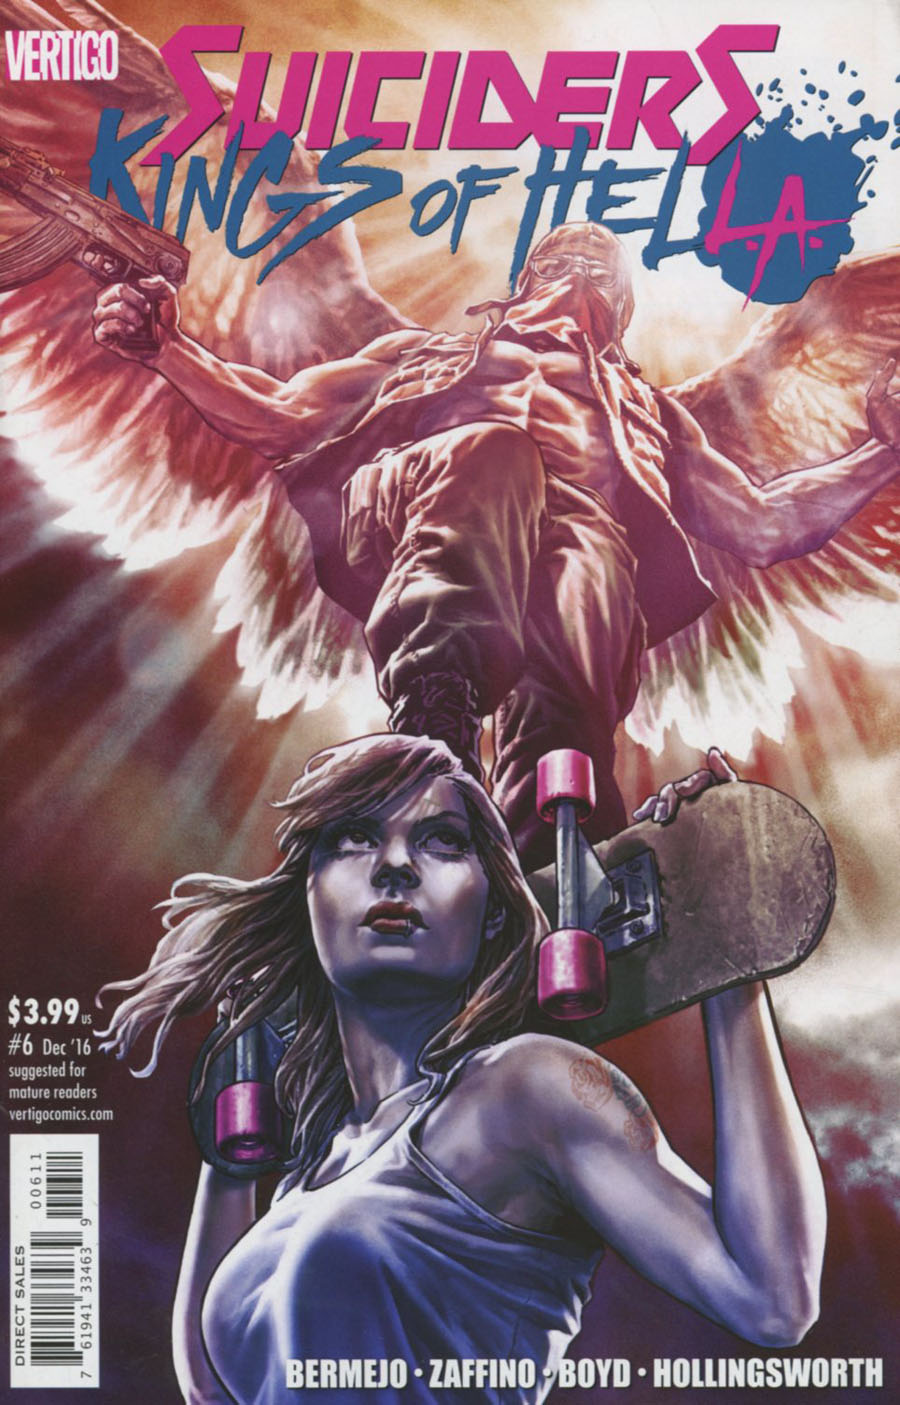 Suiciders Kings Of HelL.A. #6